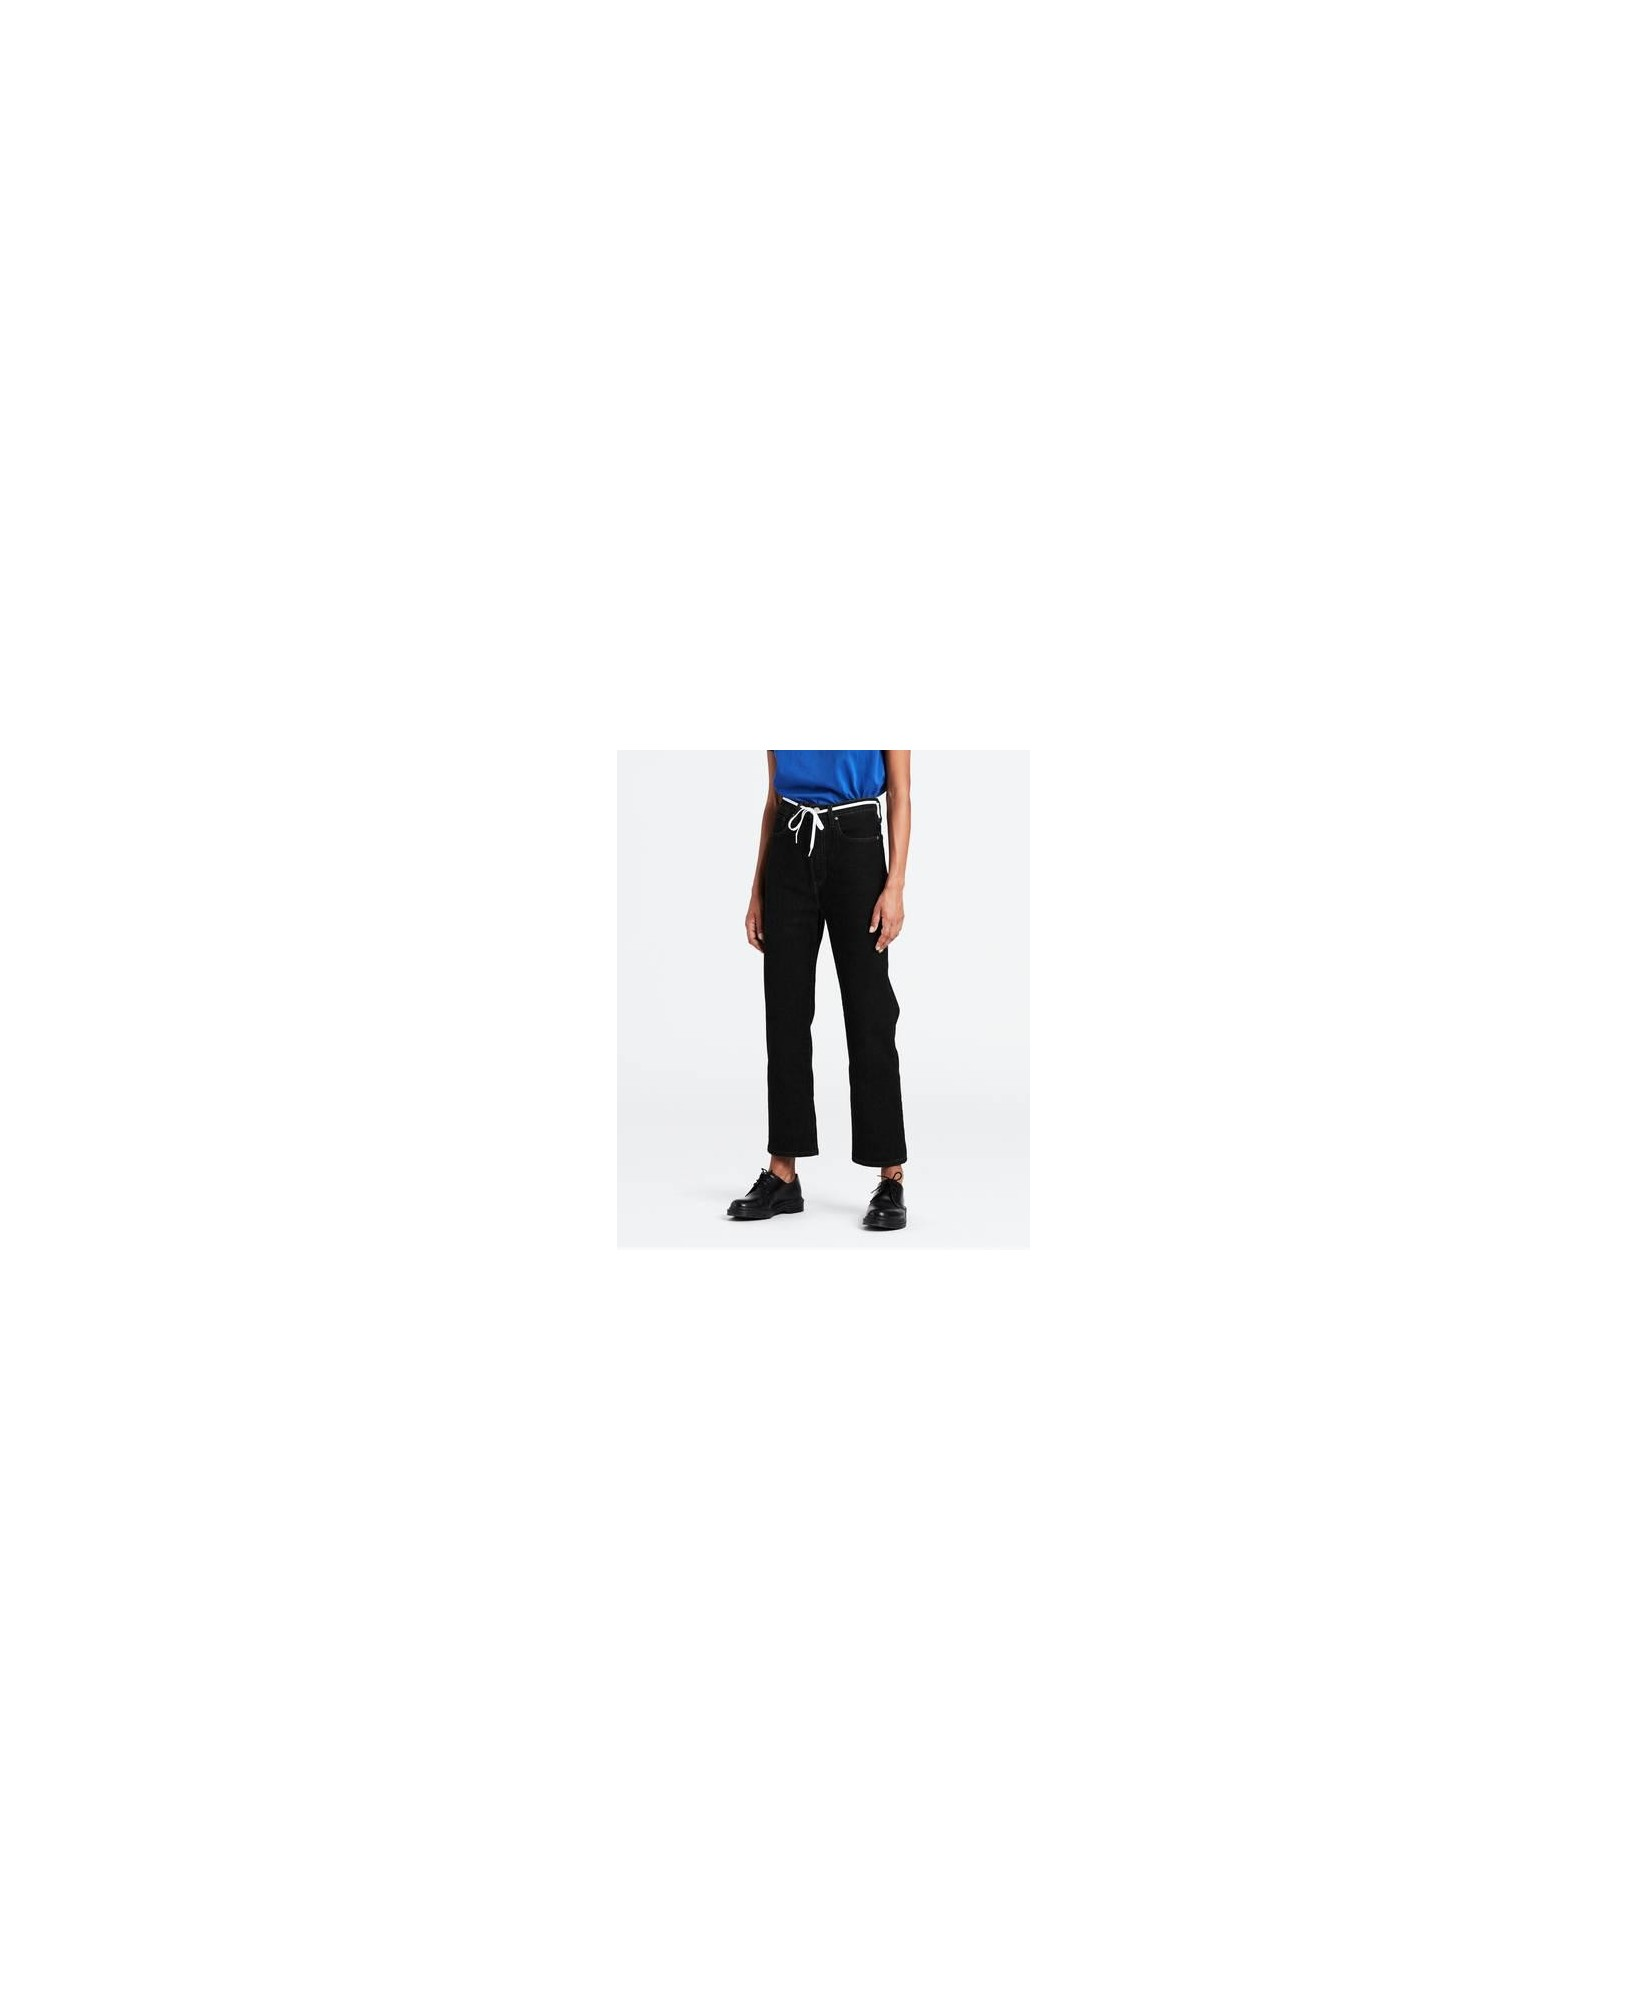 RIBCAGE STRAIGHT ANKLE JEANS RIBCAGE STRAIGHT ANKLE JEANS